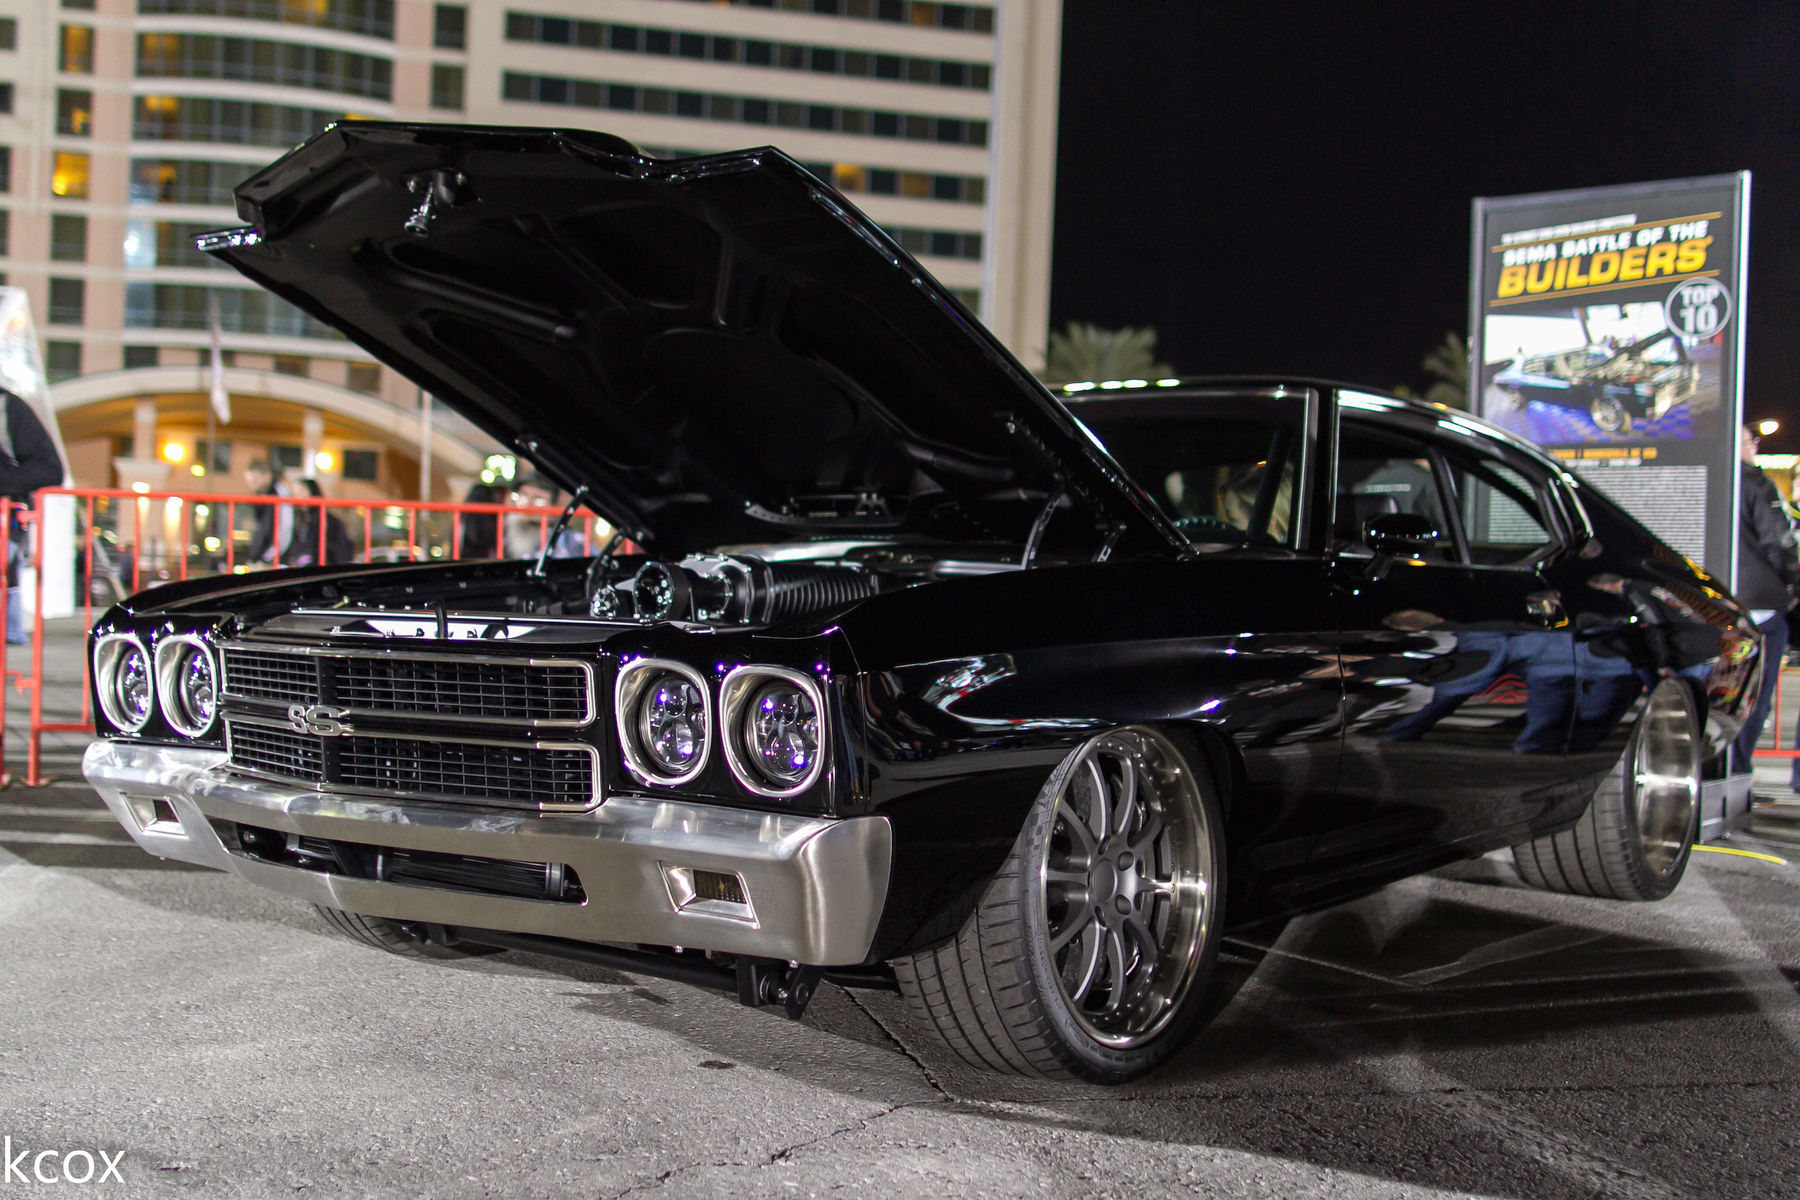 1970 Chevrolet Chevelle | Mo's 1970 Chevy Chevelle on Forgeline ZX3P Wheels